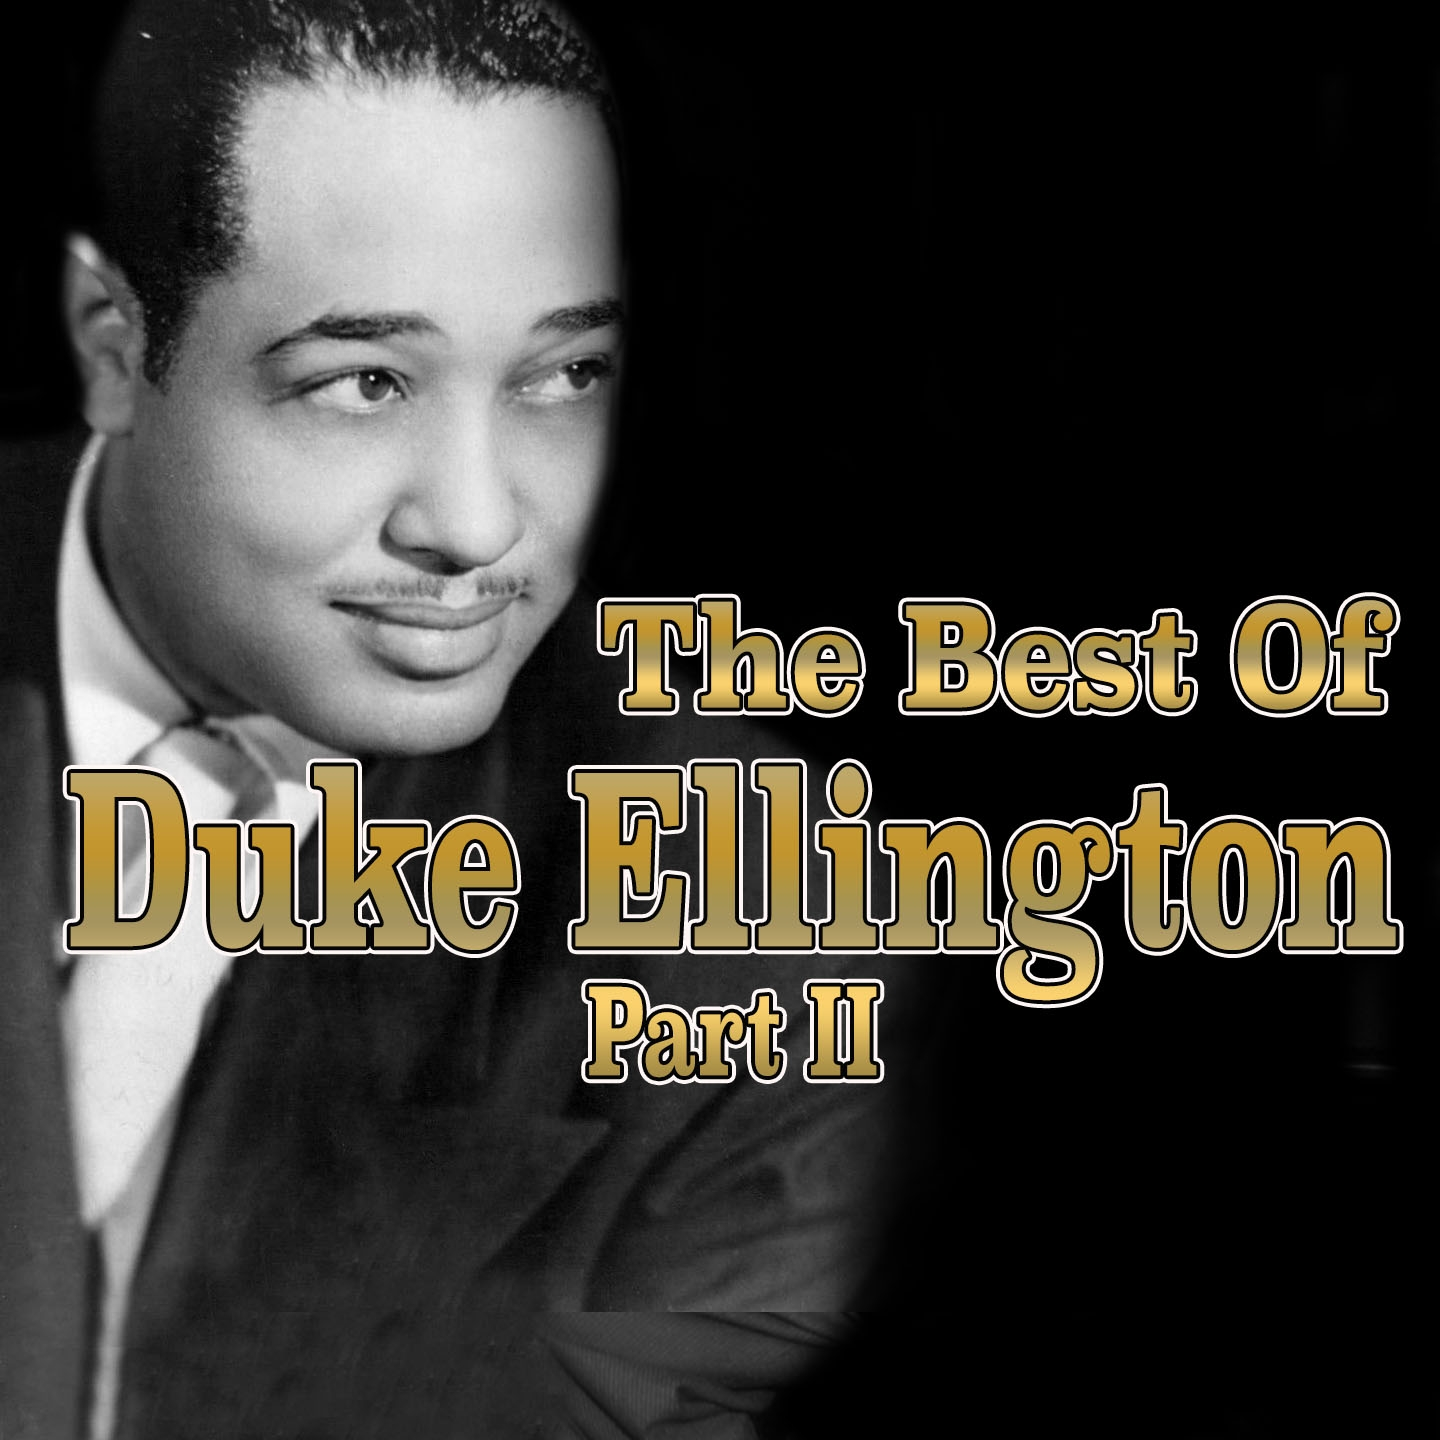 The Best of Duke Ellington, Part 2